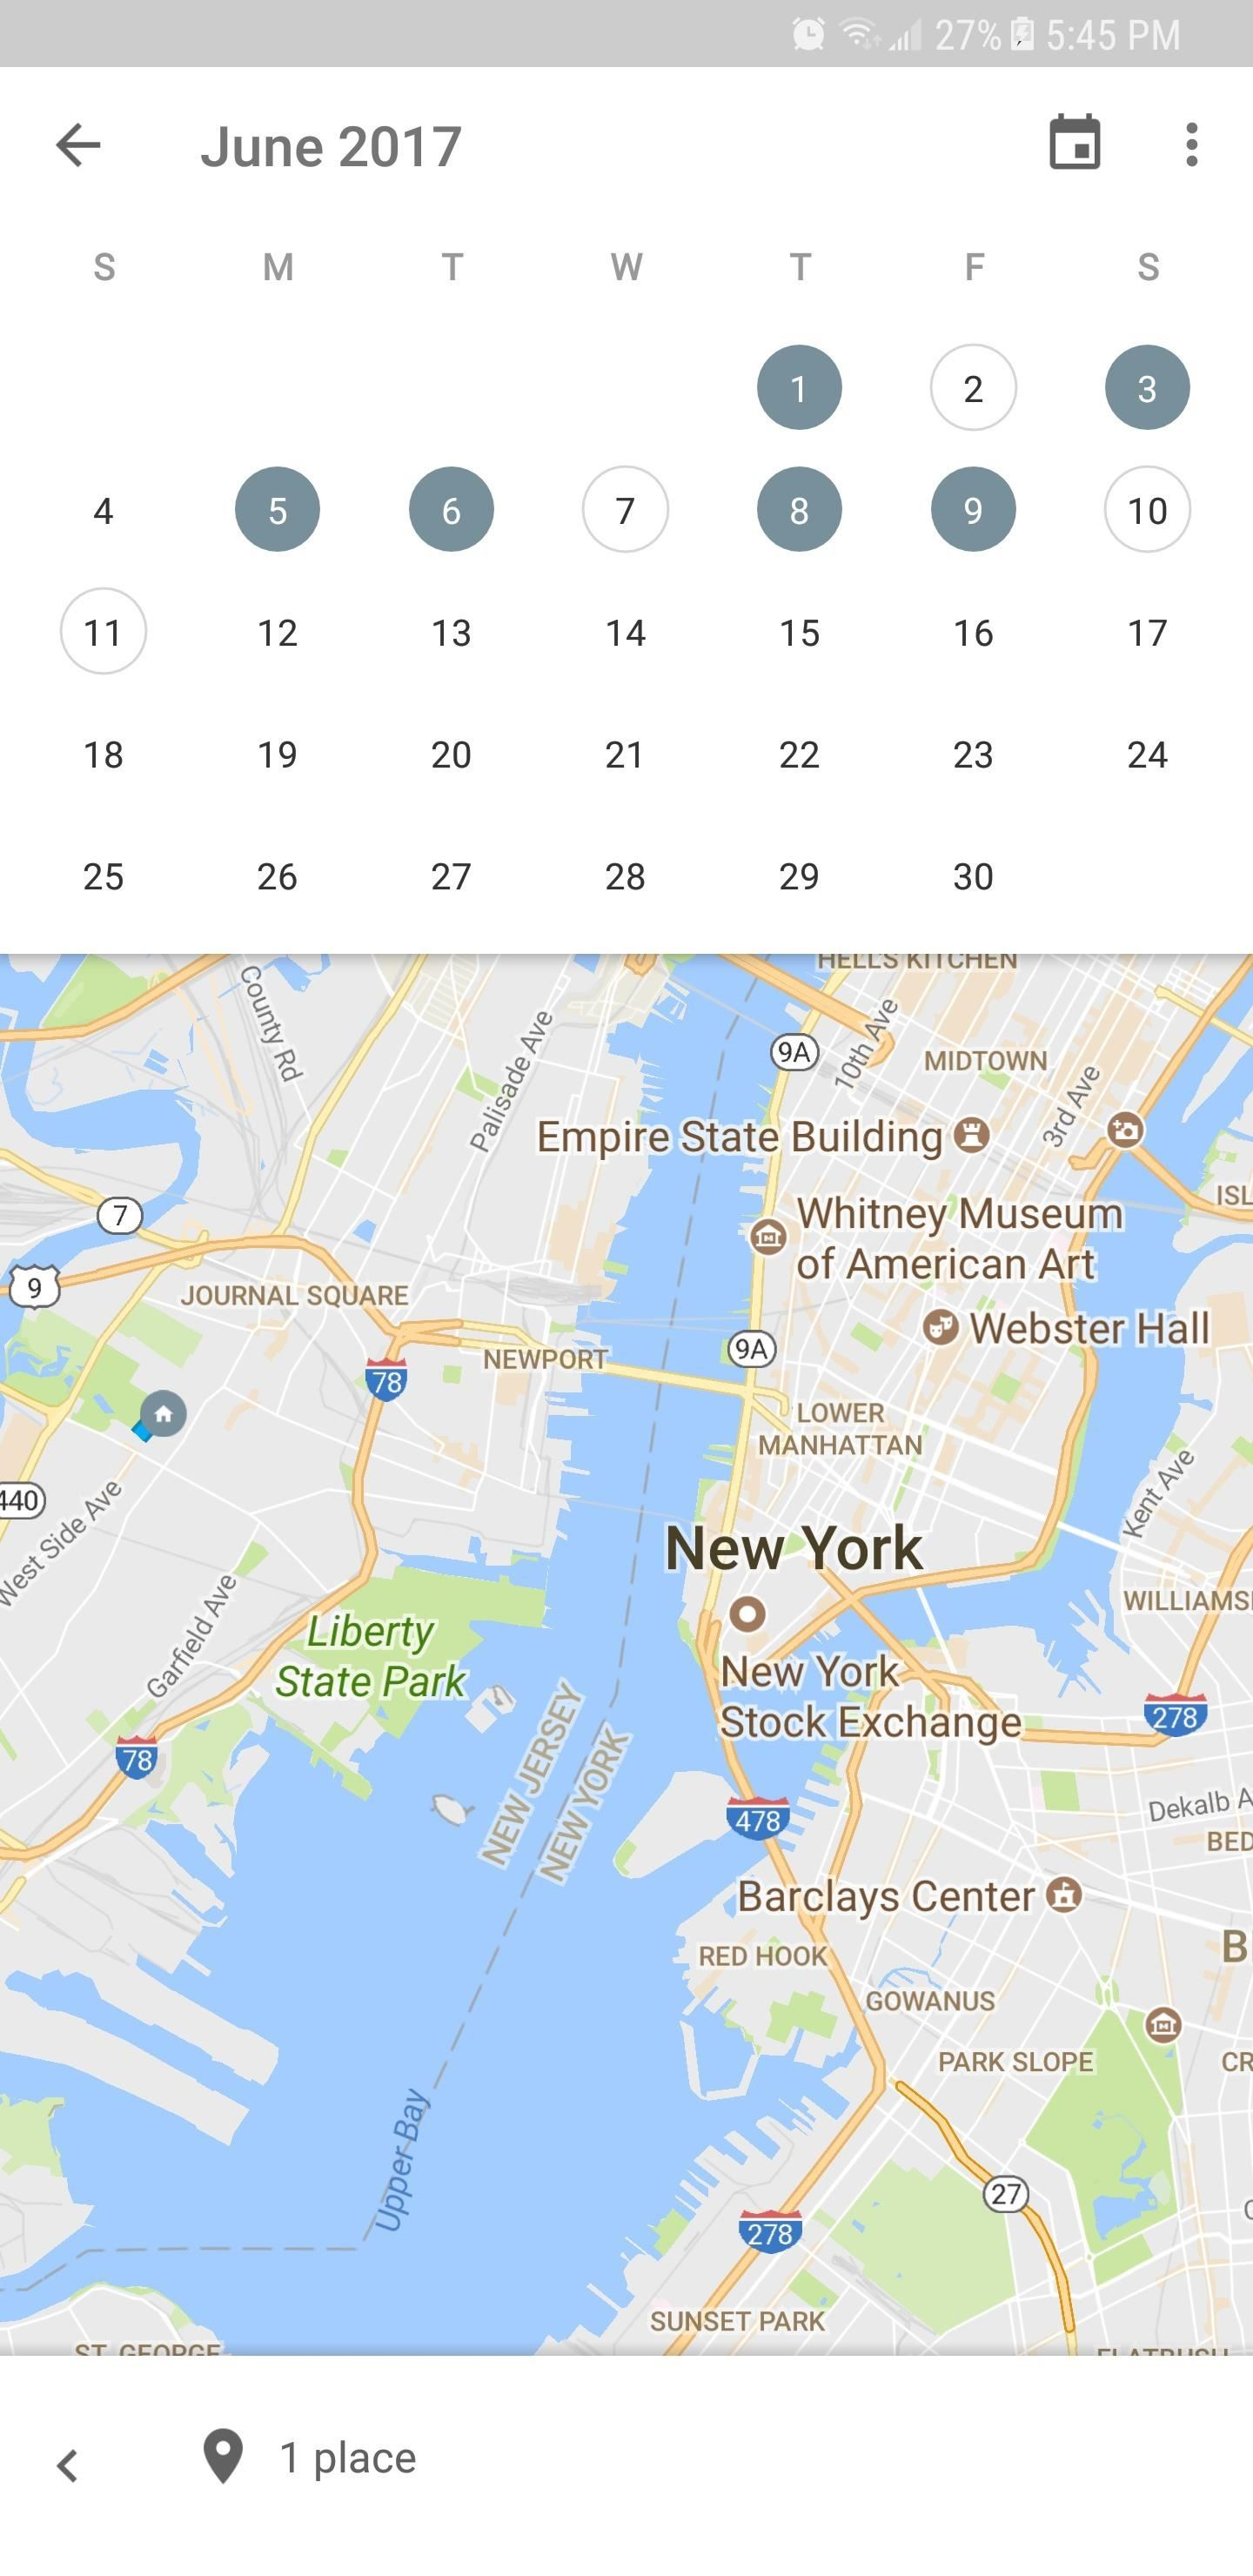 Google Maps 101: How to View & Manage Your Location History on iPhone or Android